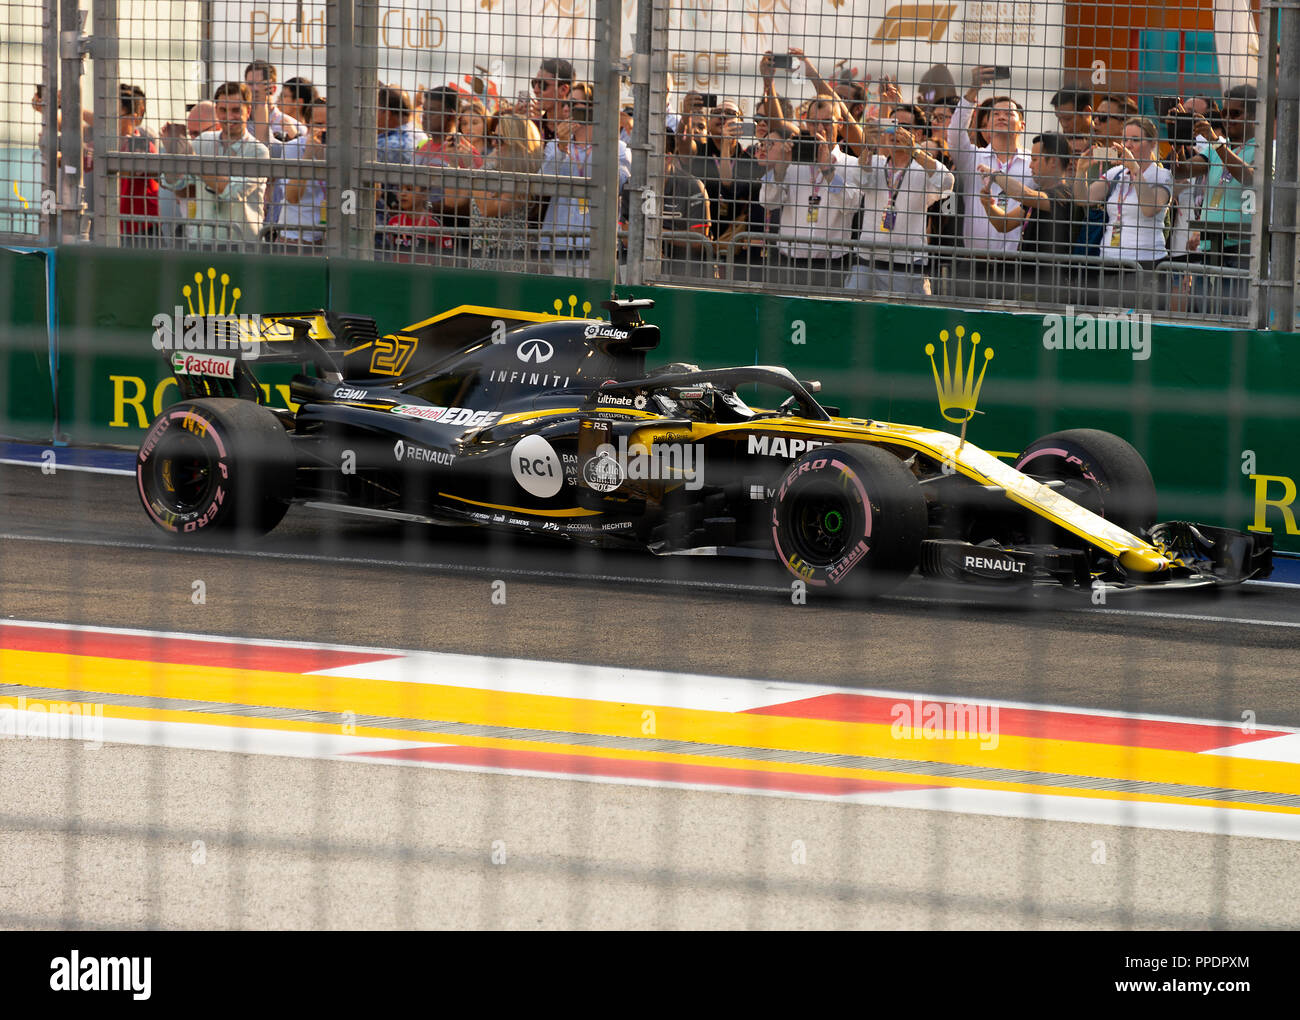 Motor Sport Fans Stock Photos Images Alamy Circuit Map For Bromyard Speed Festival A Renault Formula One Team Racing Car At The Pit Exit Of